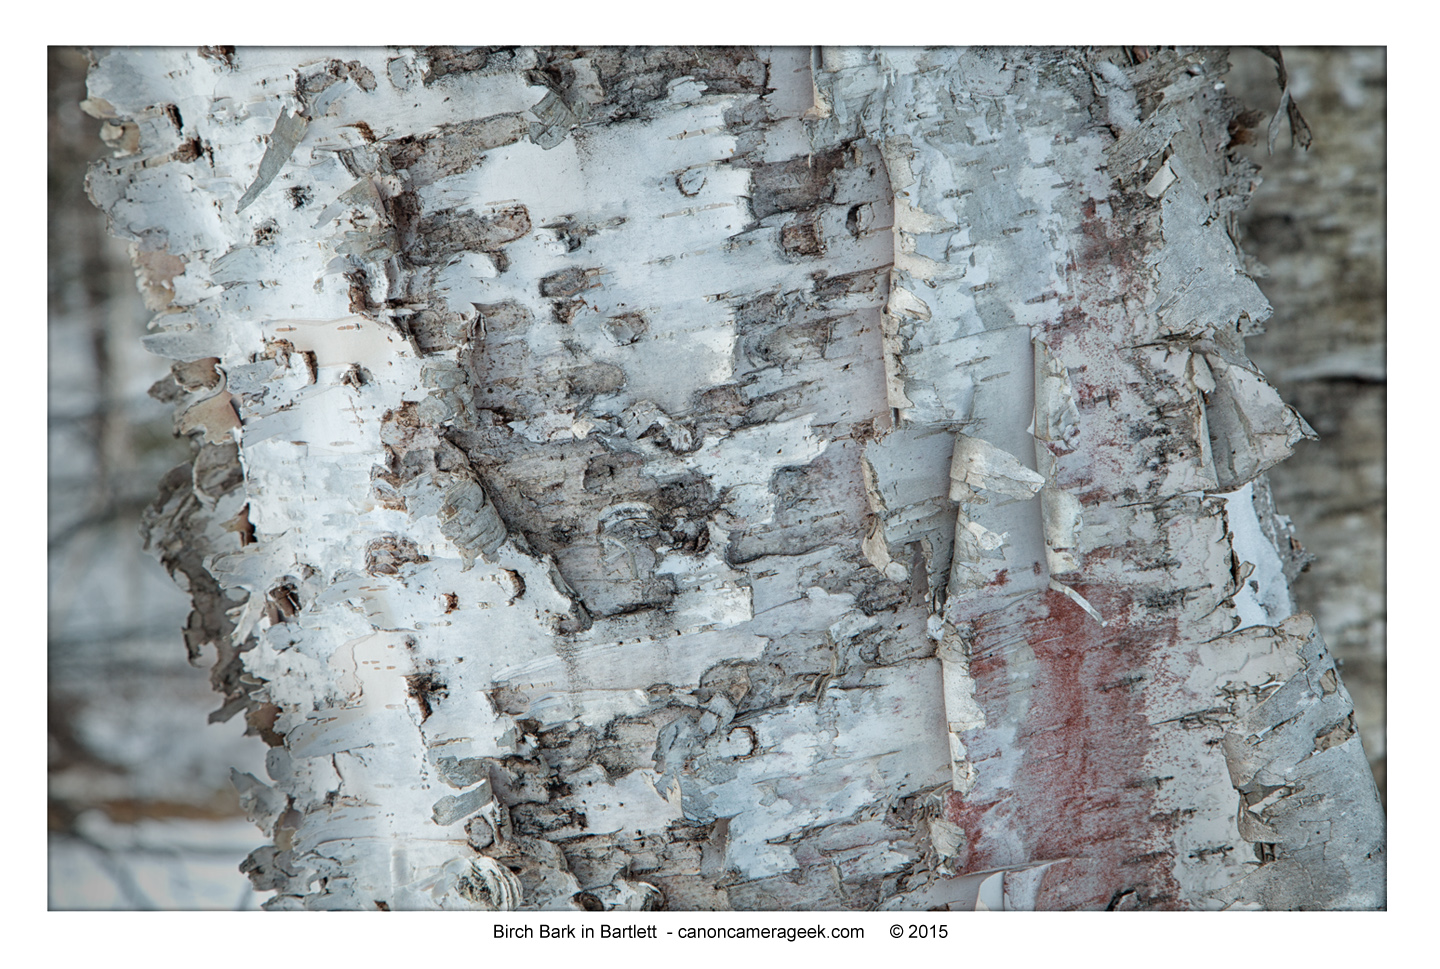 Birch tree bark-close-up Canon 5D Mark III